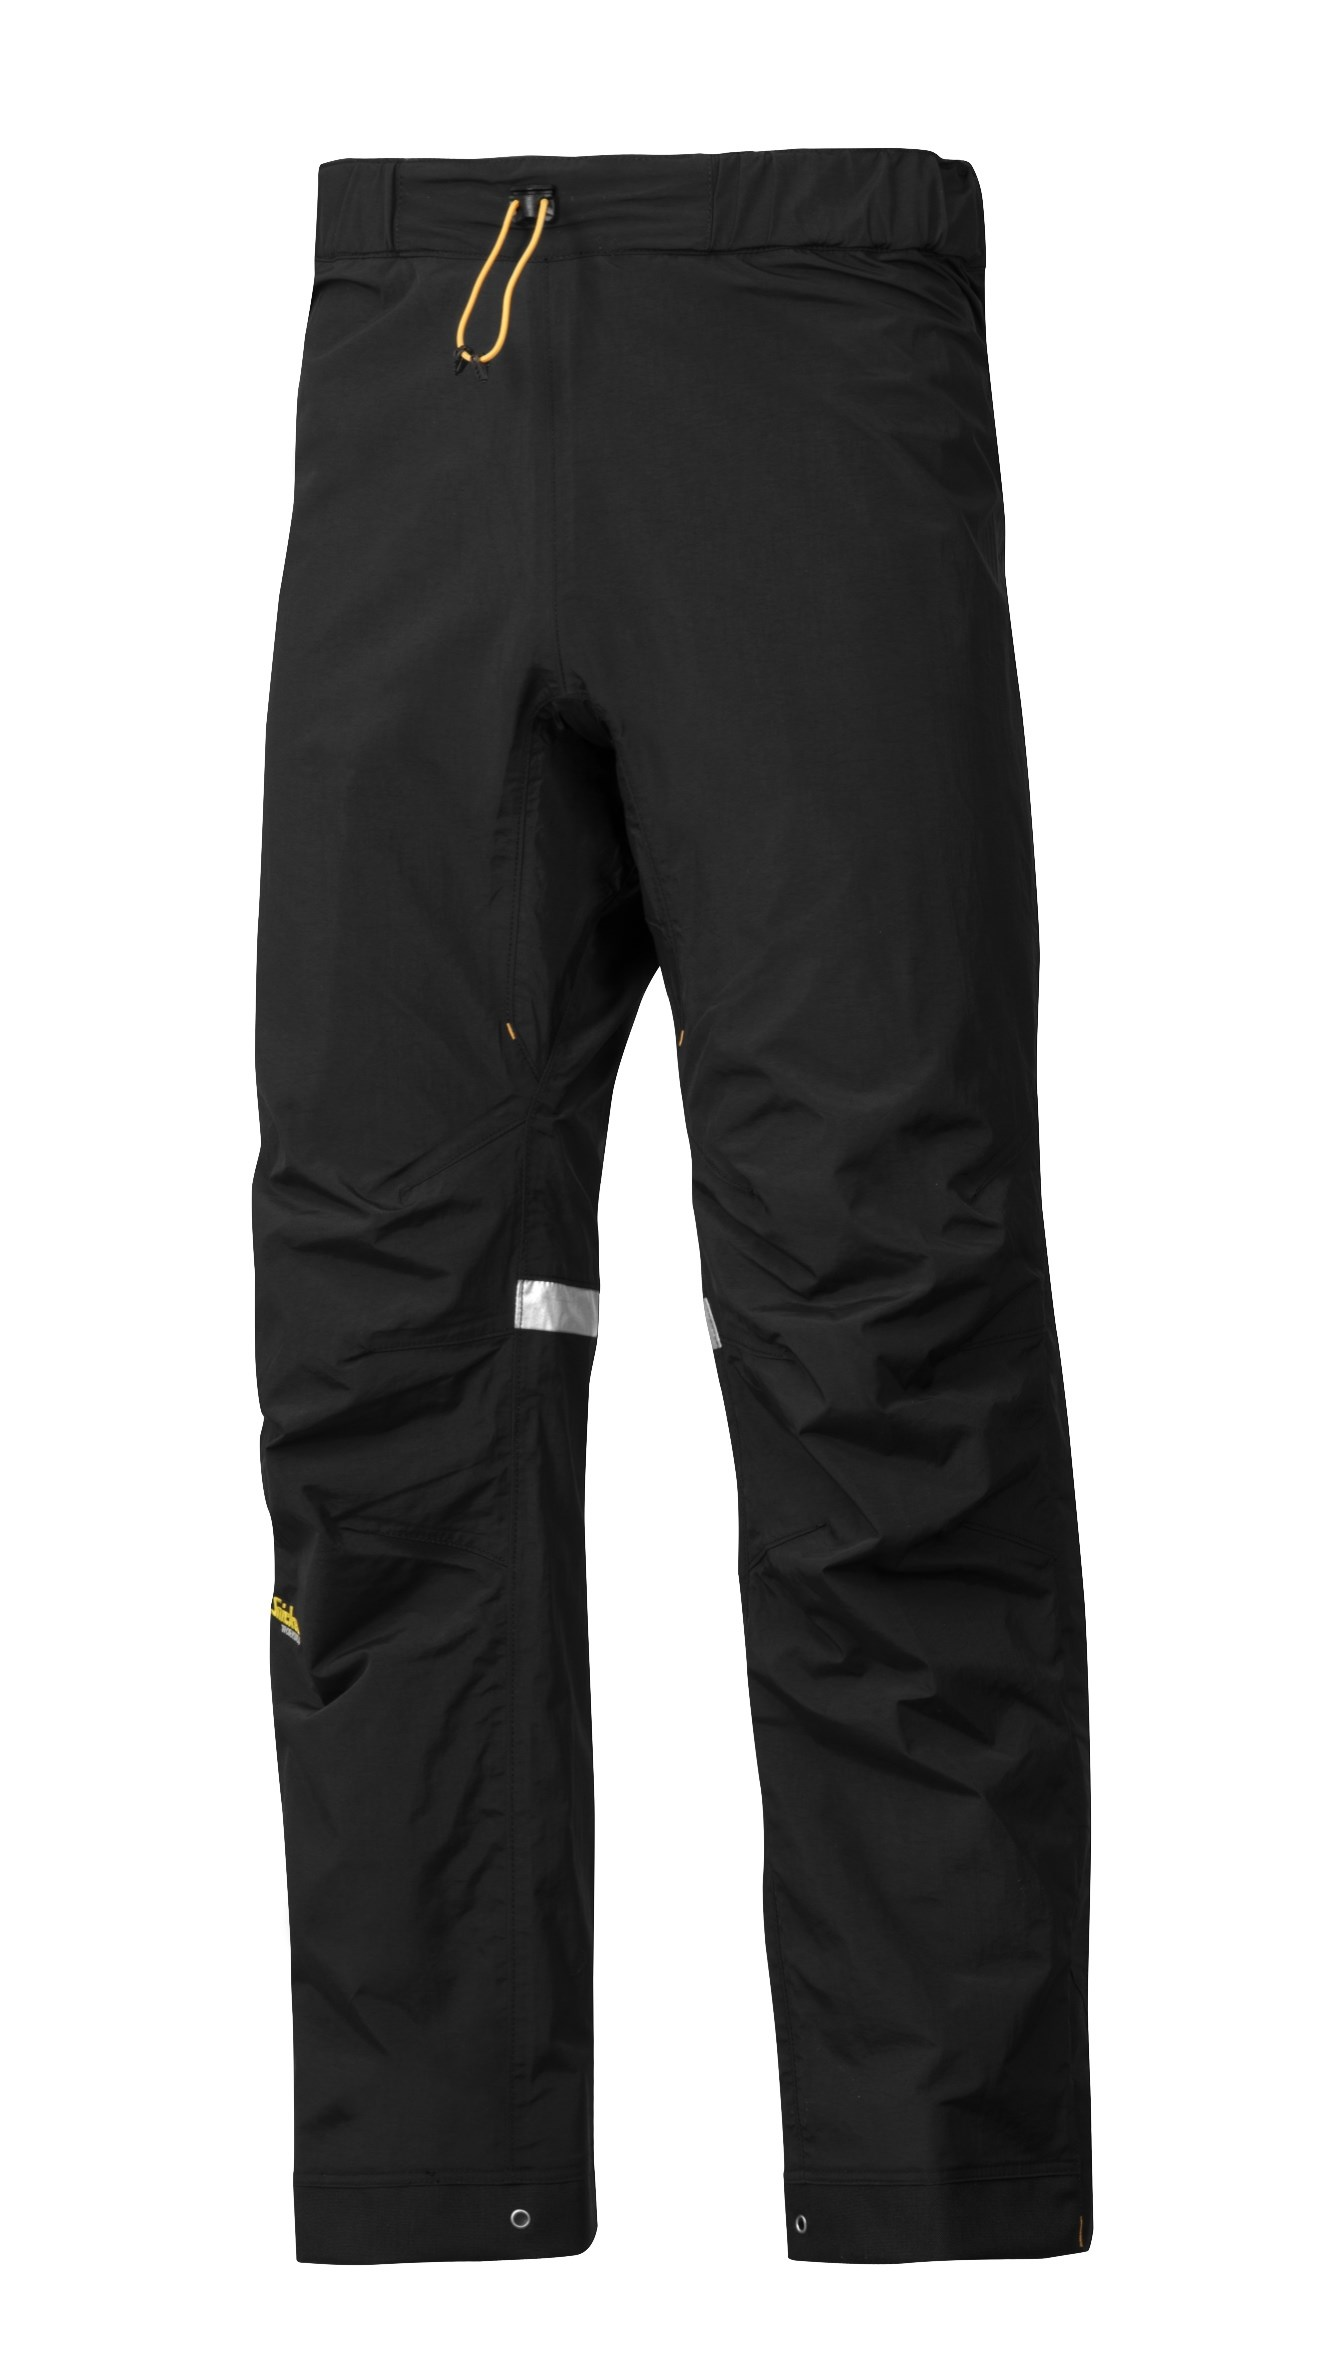 Snickers 6901 AllroundWork Waterproof Shell Trouser